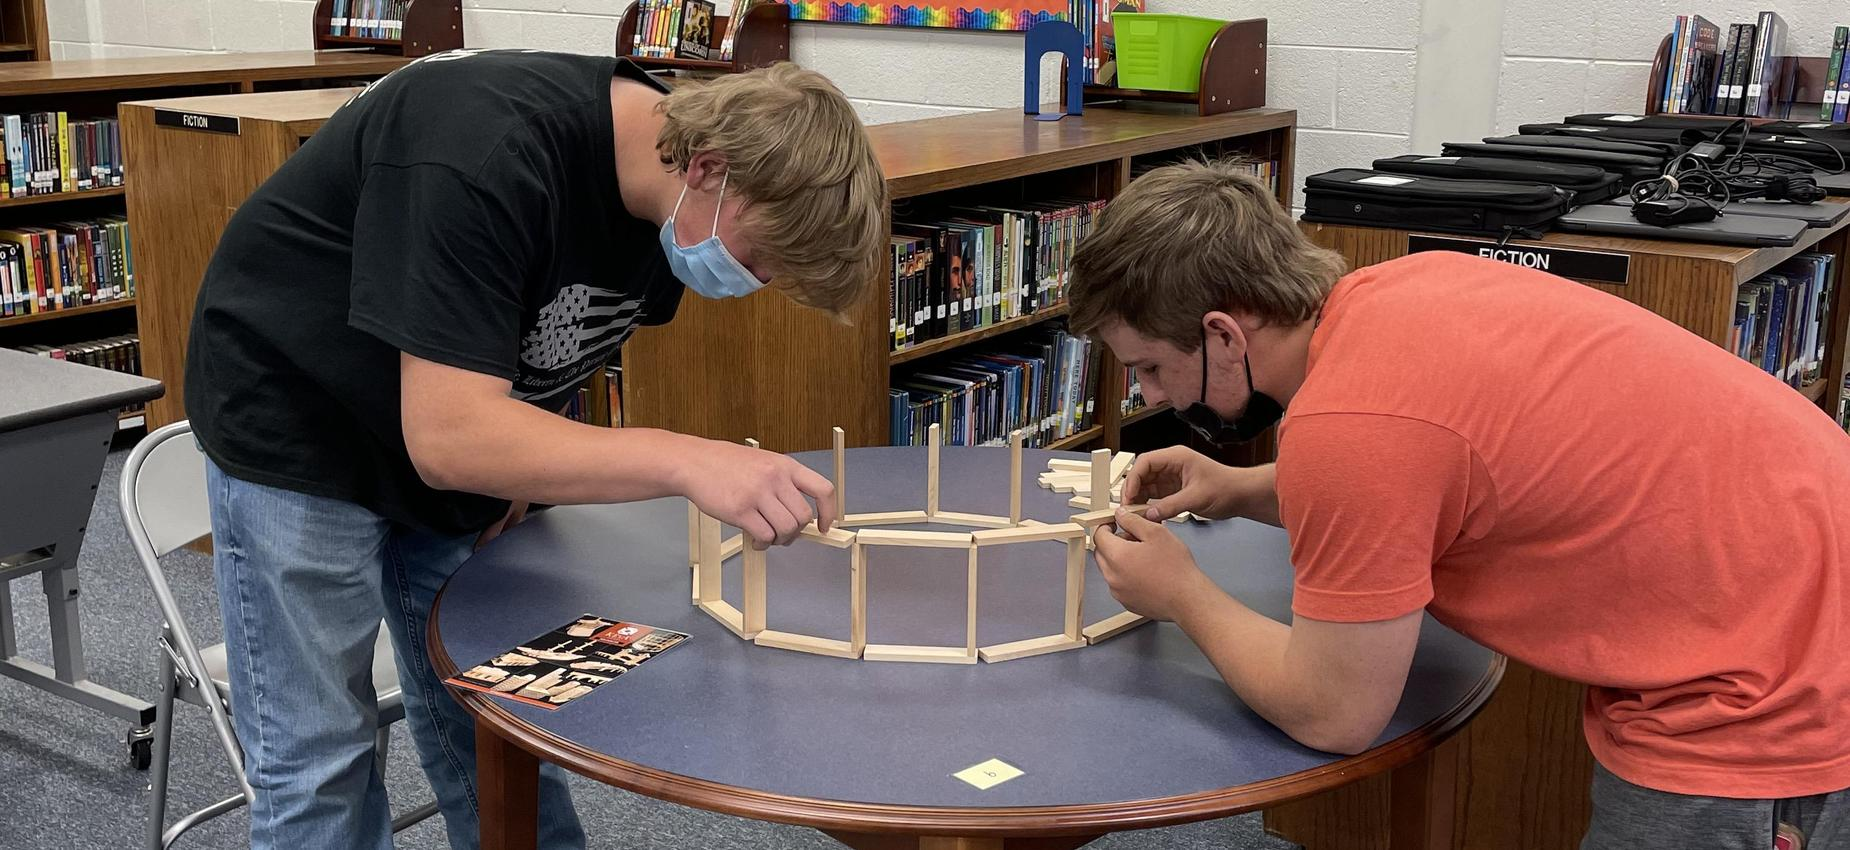 Two students work with blocks in a library.